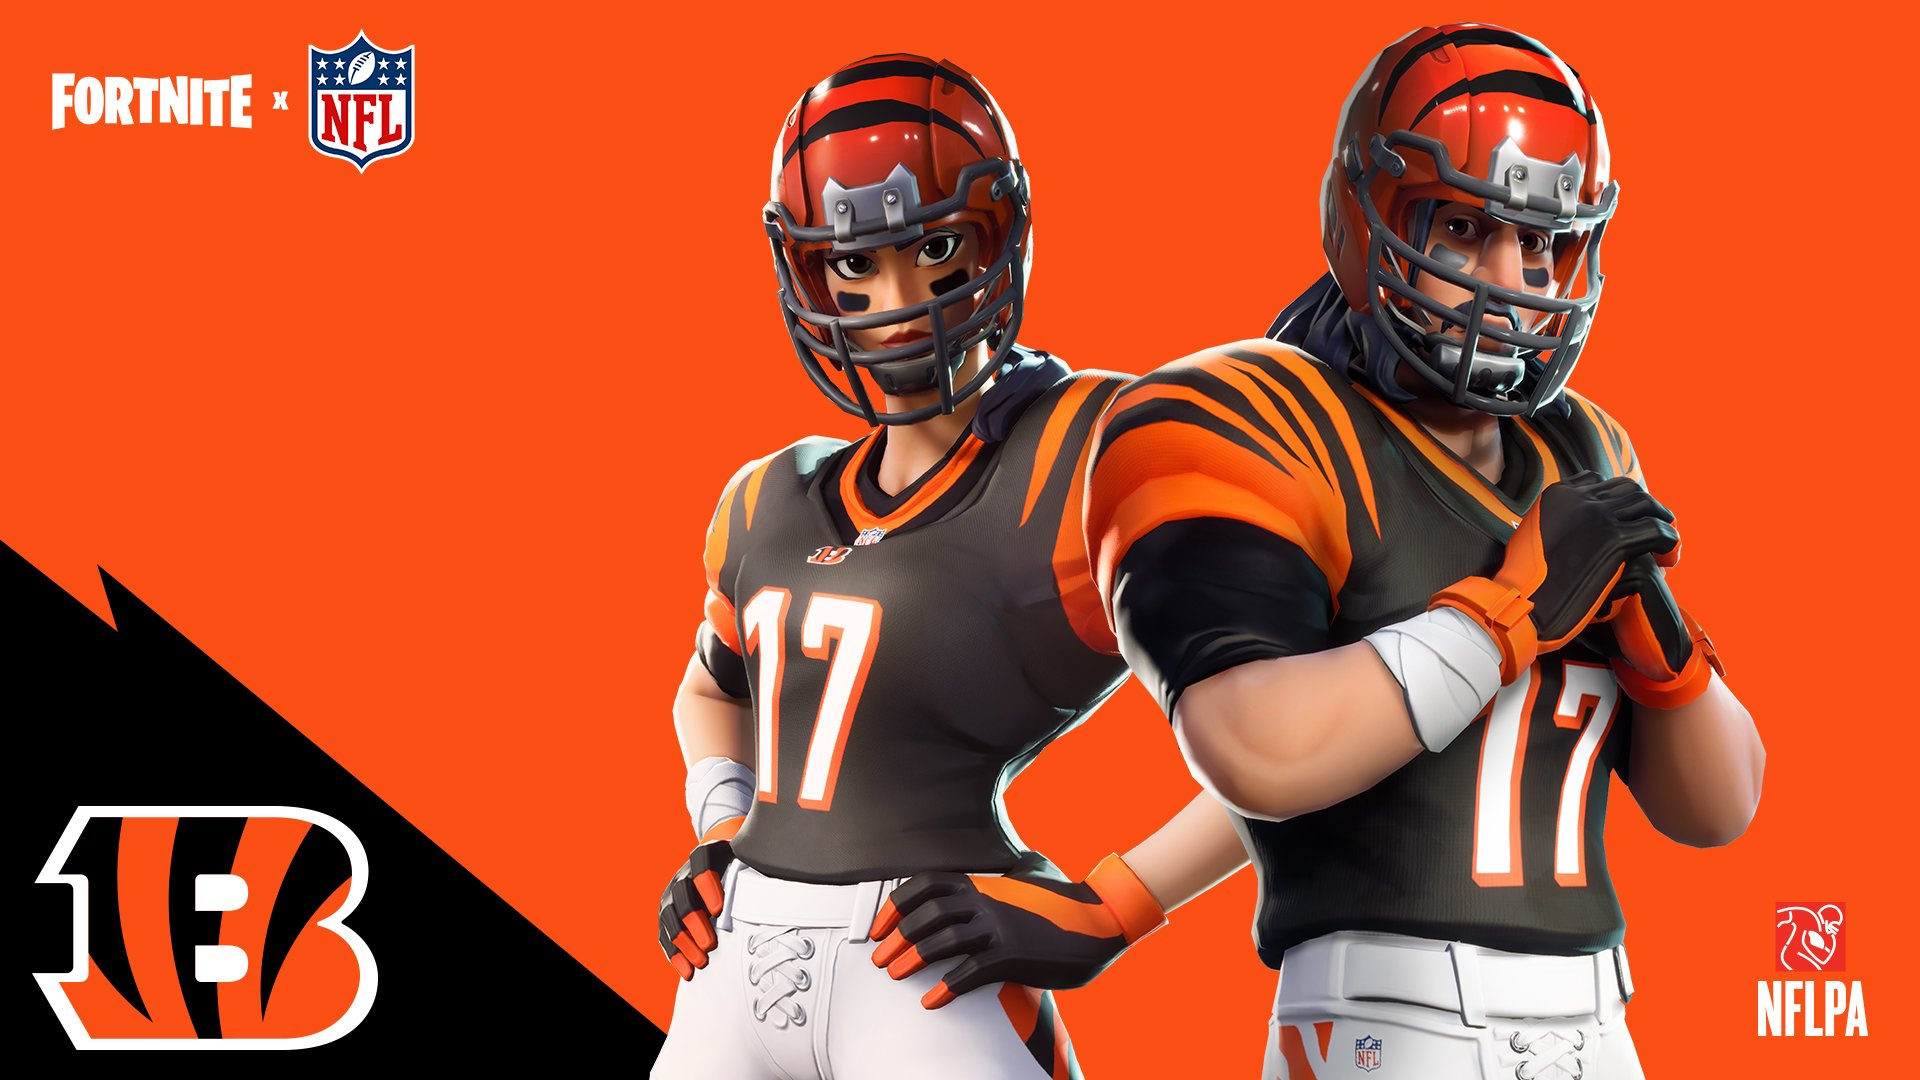 Available Now: Are you ready to earn your stripes?   @FortniteGame x @Bengals   #SeizeTheDEY https://t.co/8ERSskYUkI